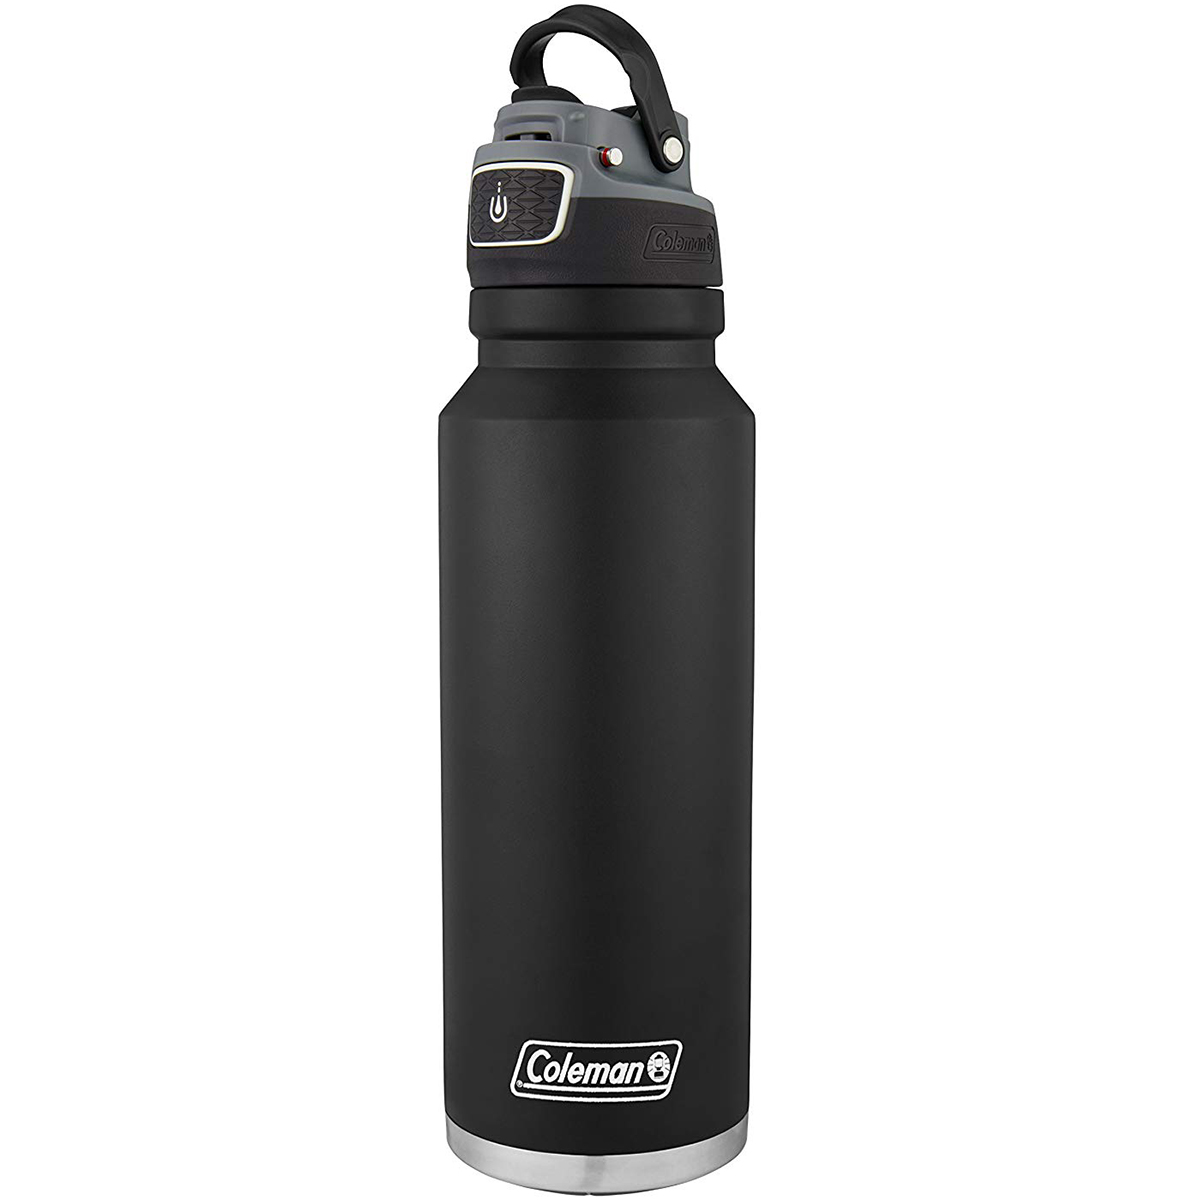 thumbnail 5 - Coleman 40 oz. Free Flow Autoseal Insulated Stainless Steel Water Bottle